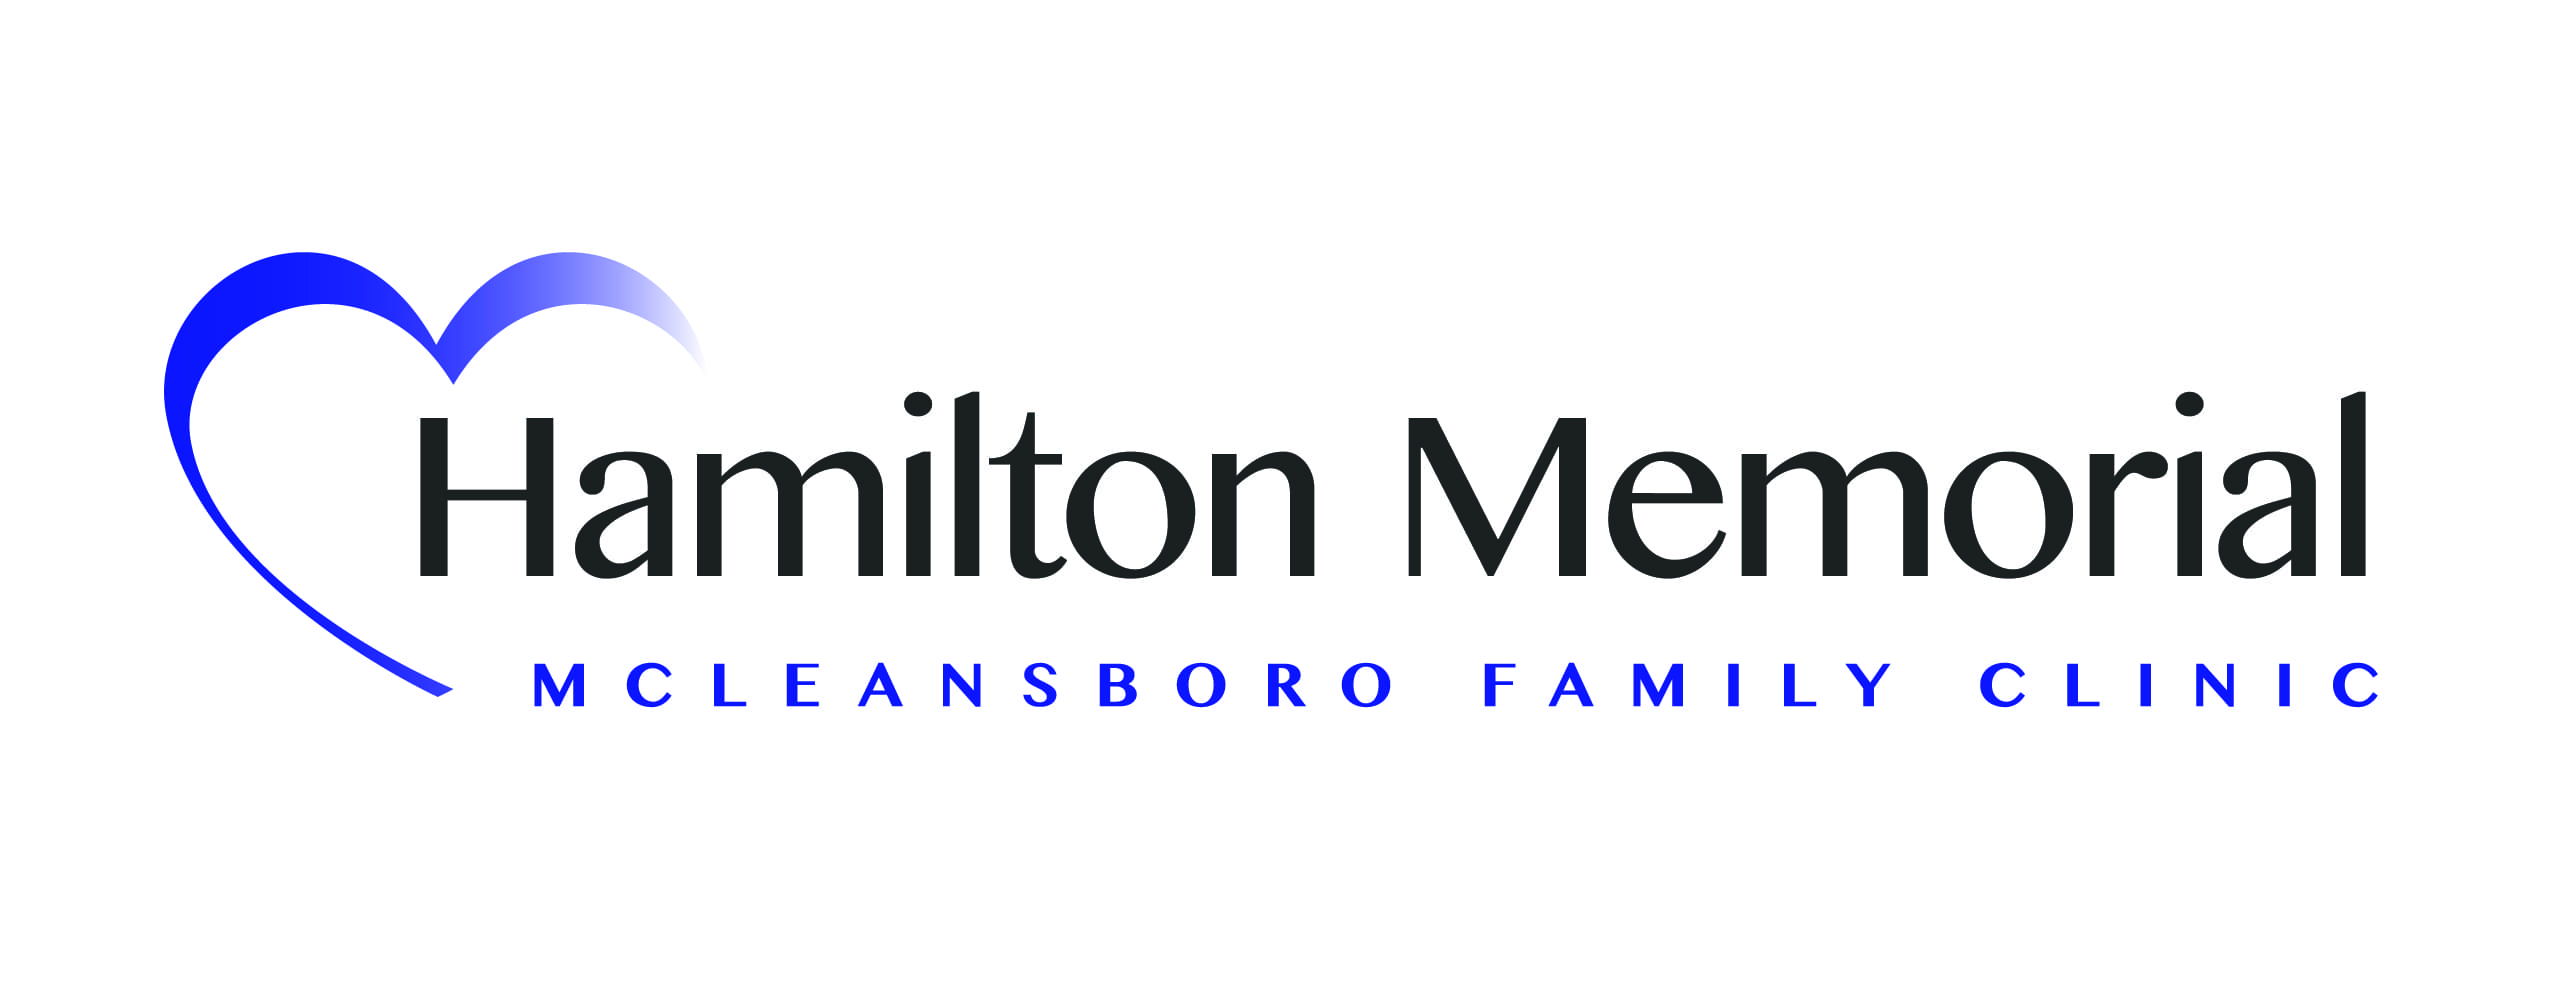 Hamilton Memorial Hospital Gets Funding for Roof Replaement